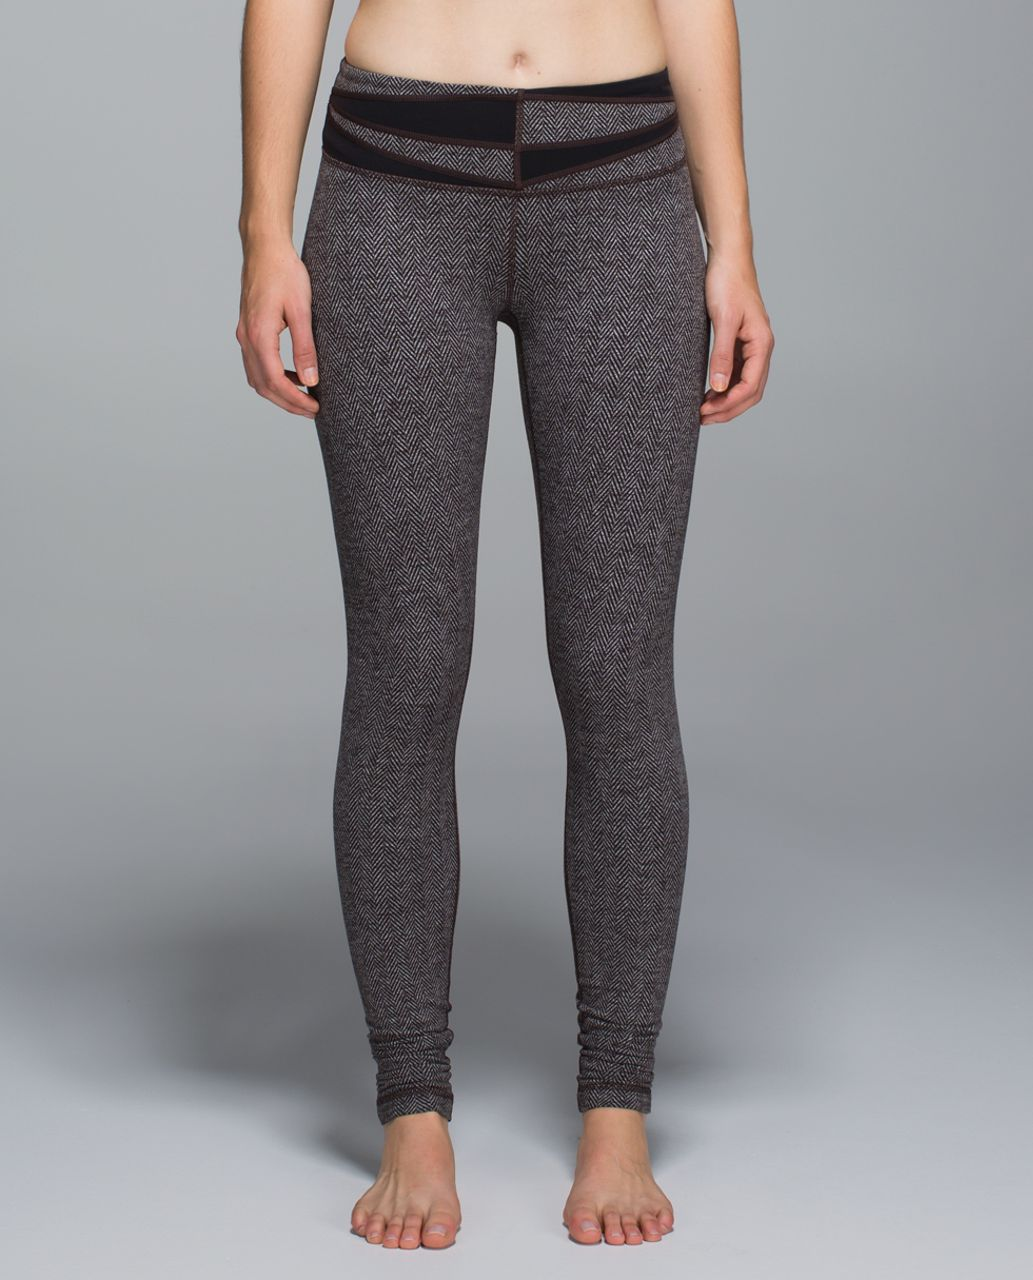 Lululemon Wunder Under Pant - Giant Herringbone Black Heathered Black / Wi14 Quilt 2